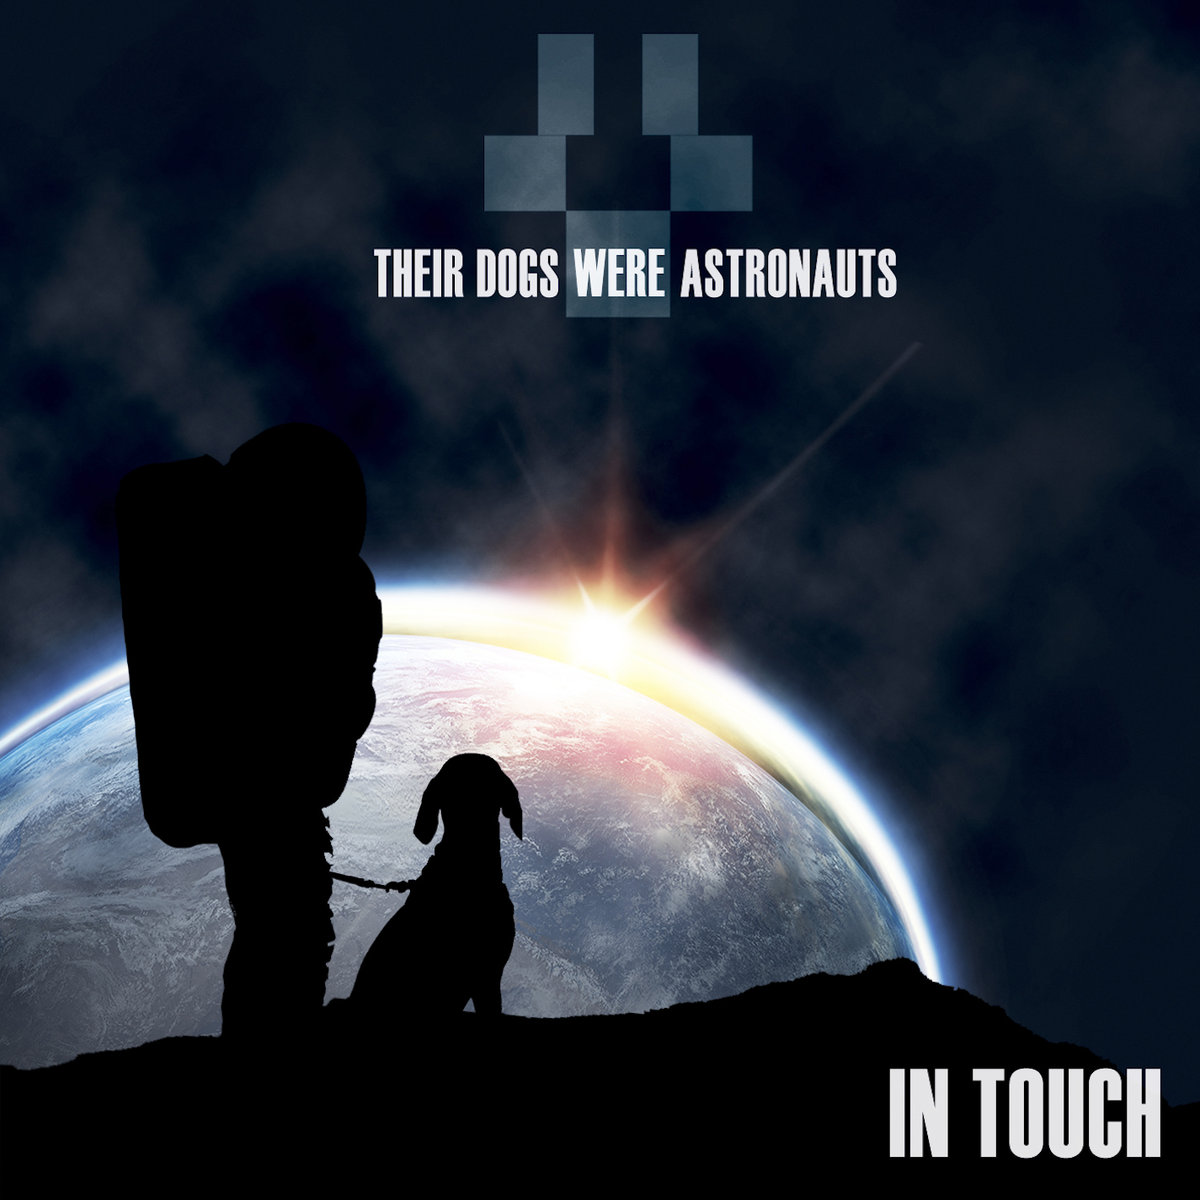 Their Dogs Were Astronauts - Unveil The Endless @ 'In Touch' album (instrumental metal, metal)